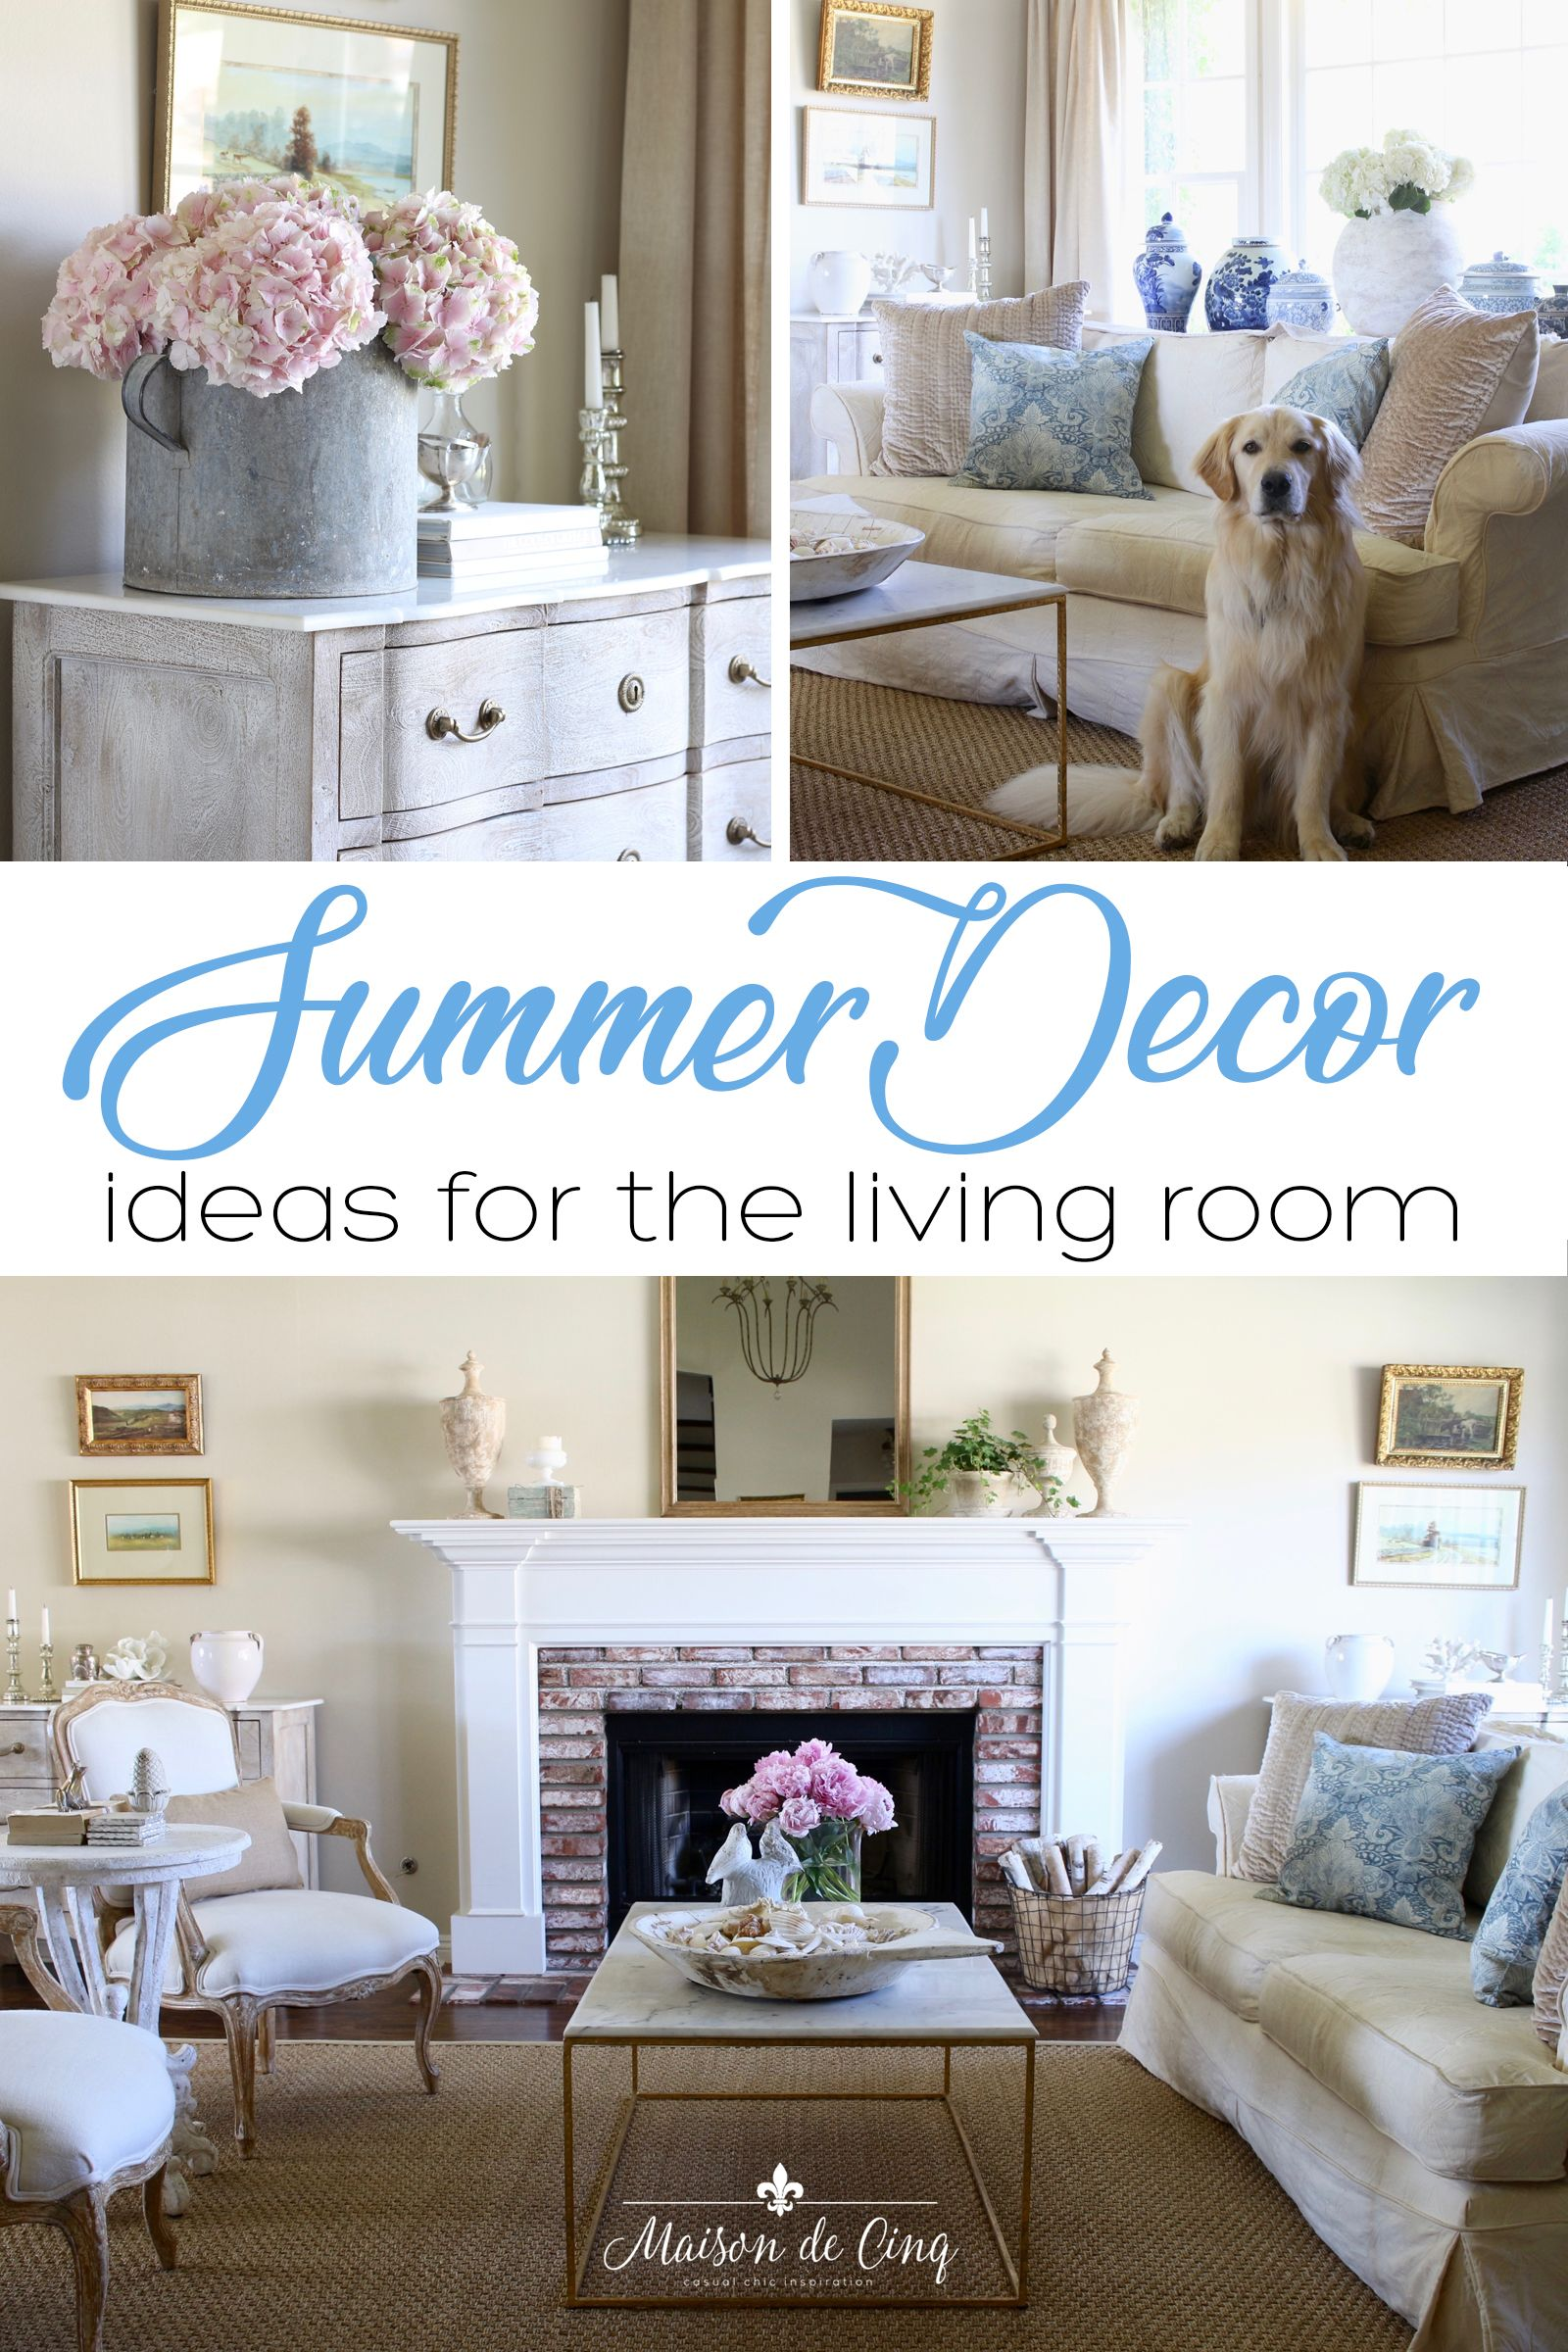 French Farmhouse Summer Decorating Ideas In The Living Room Simple Summer Decor Maisondecinq French Country Decorating Summer Decor French Country Rug Summer living room decor